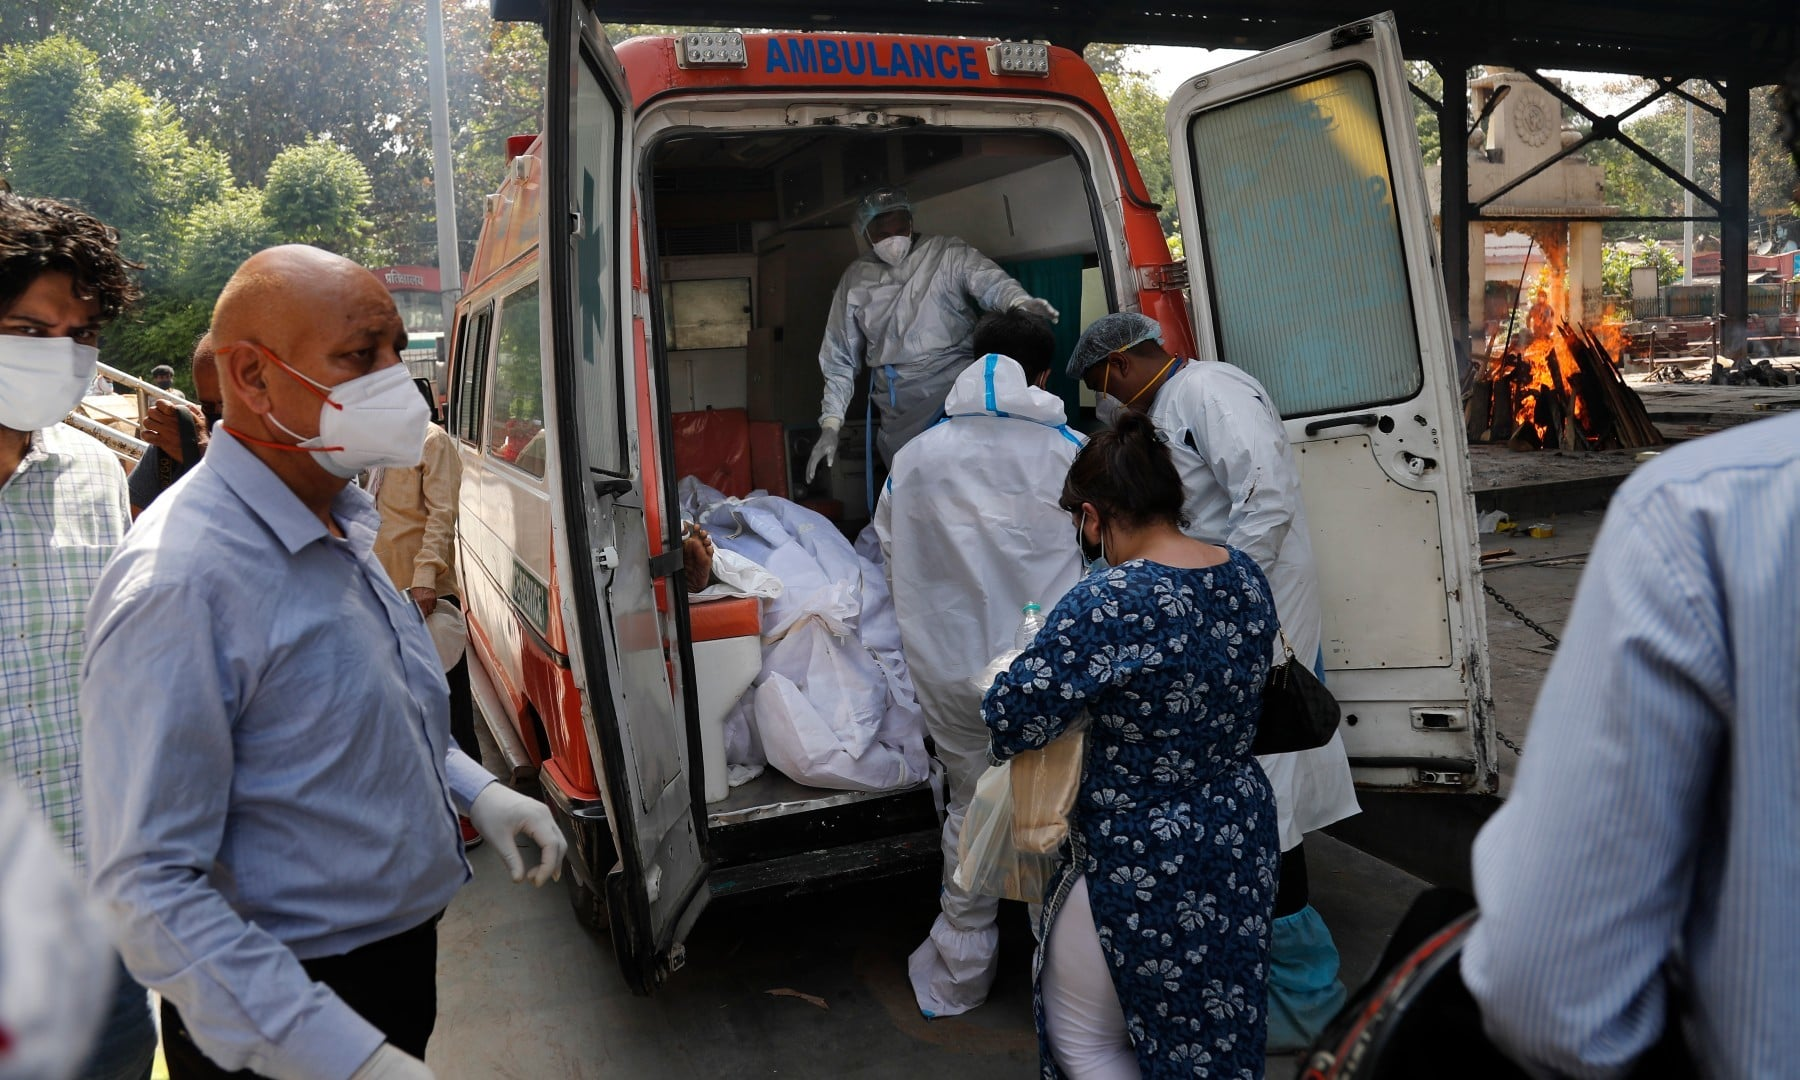 Health workers prepare to take out from an ambulance bodies of six people who died for cremation in New Delhi on April 19. — AP